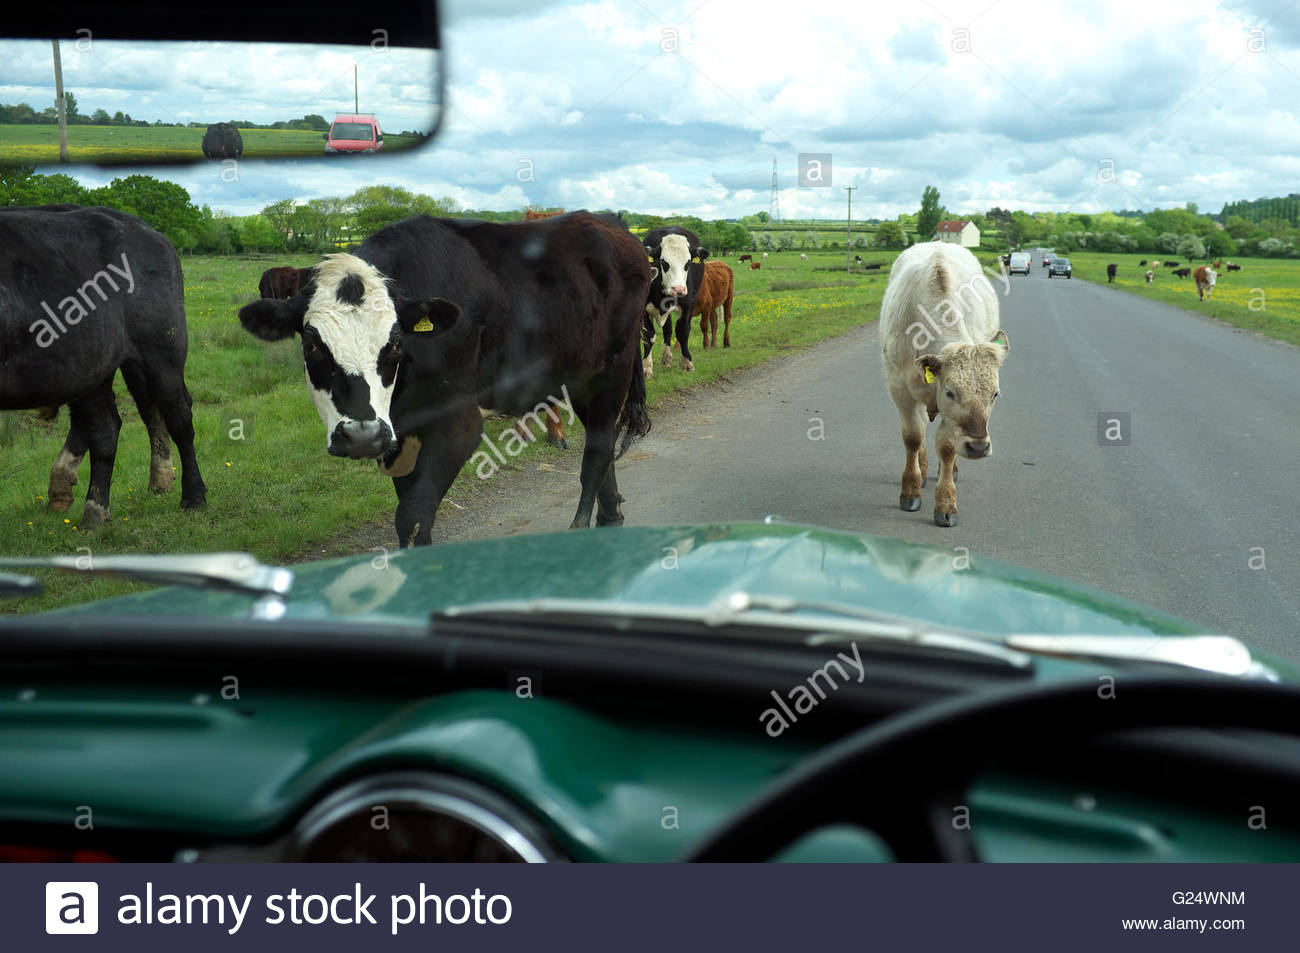 Cattle wander across the road that passes over Chipping Sodbury Common, in South Gloucestershire, UK. - Stock Image